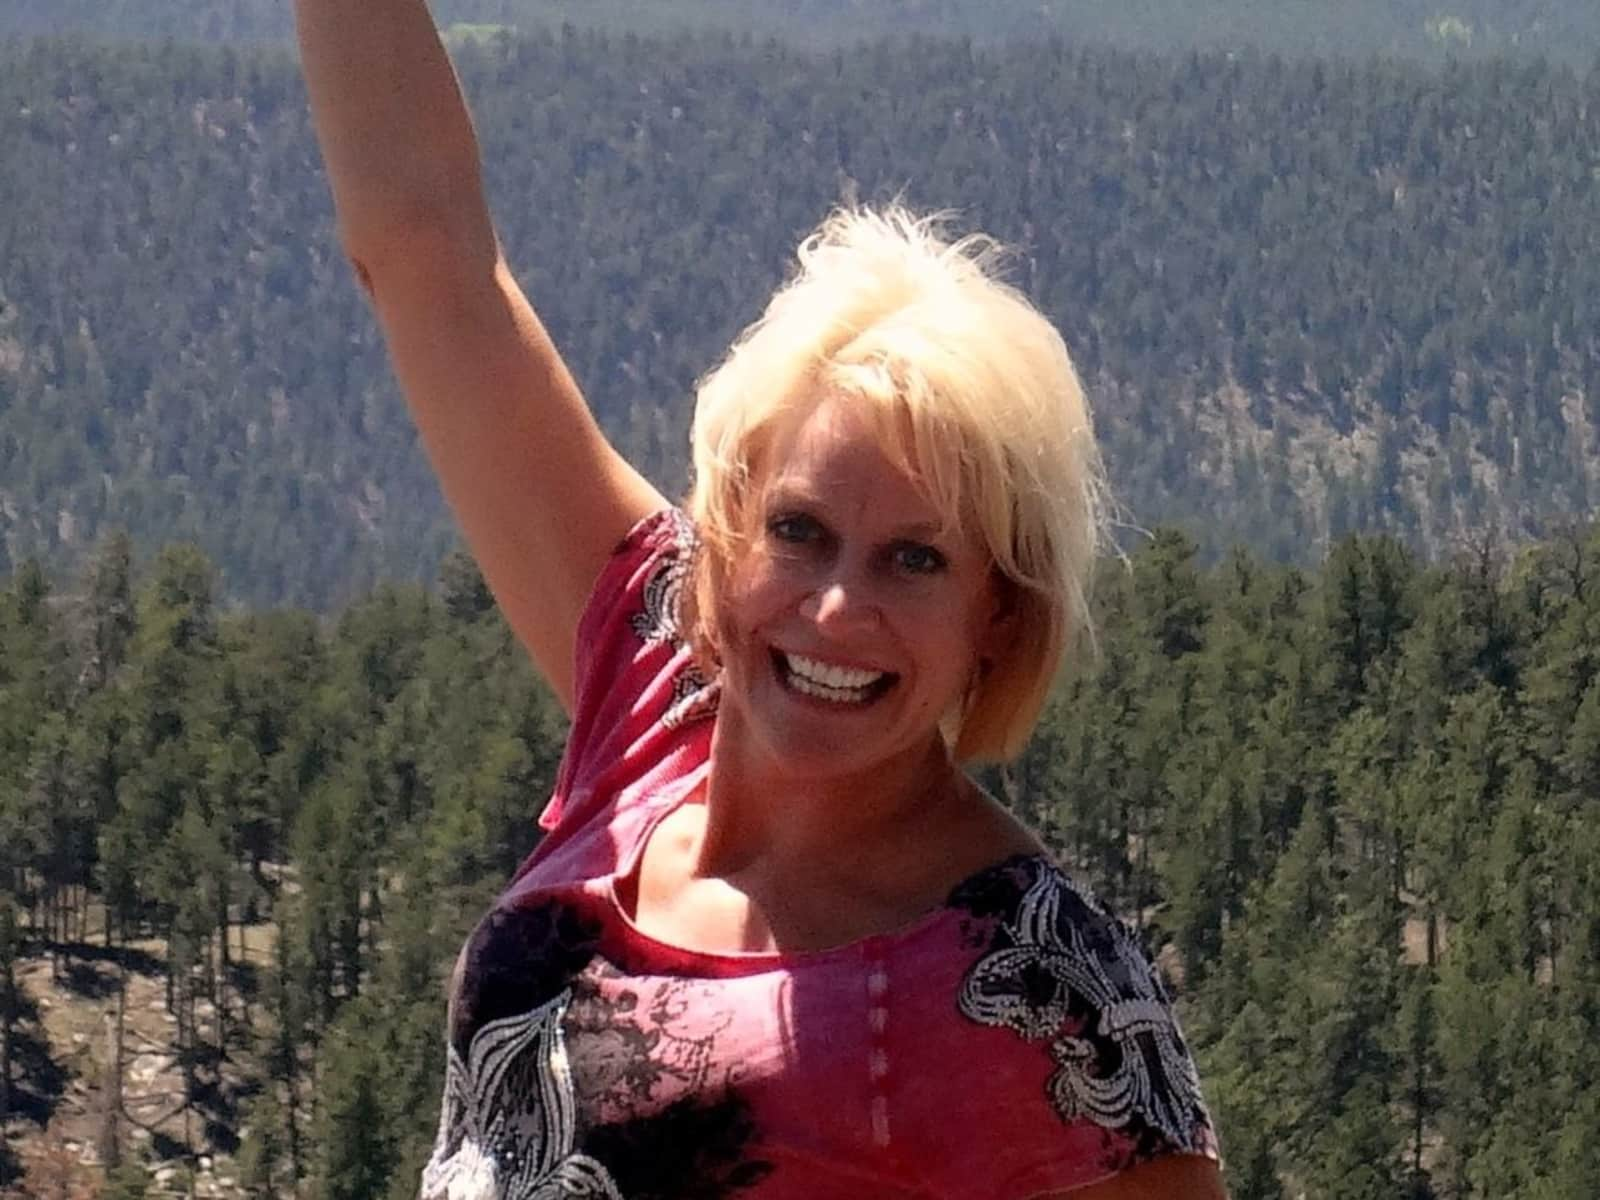 Deanna from Sedona, Arizona, United States